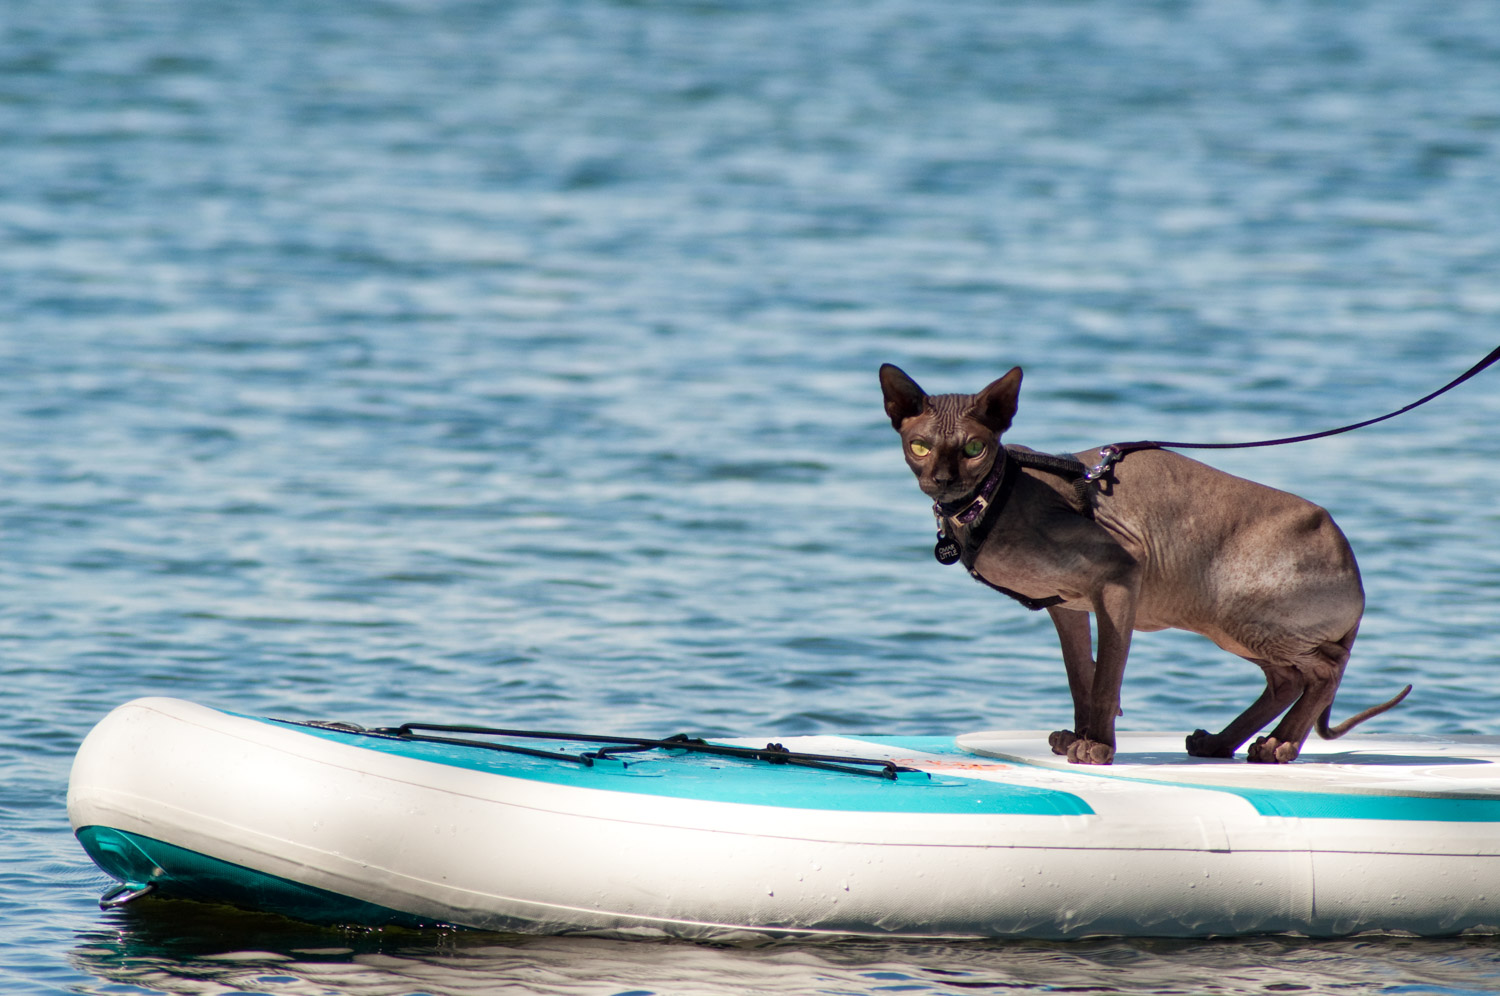 Omar doesn't mind water ??he's right at home on the paddleboard.